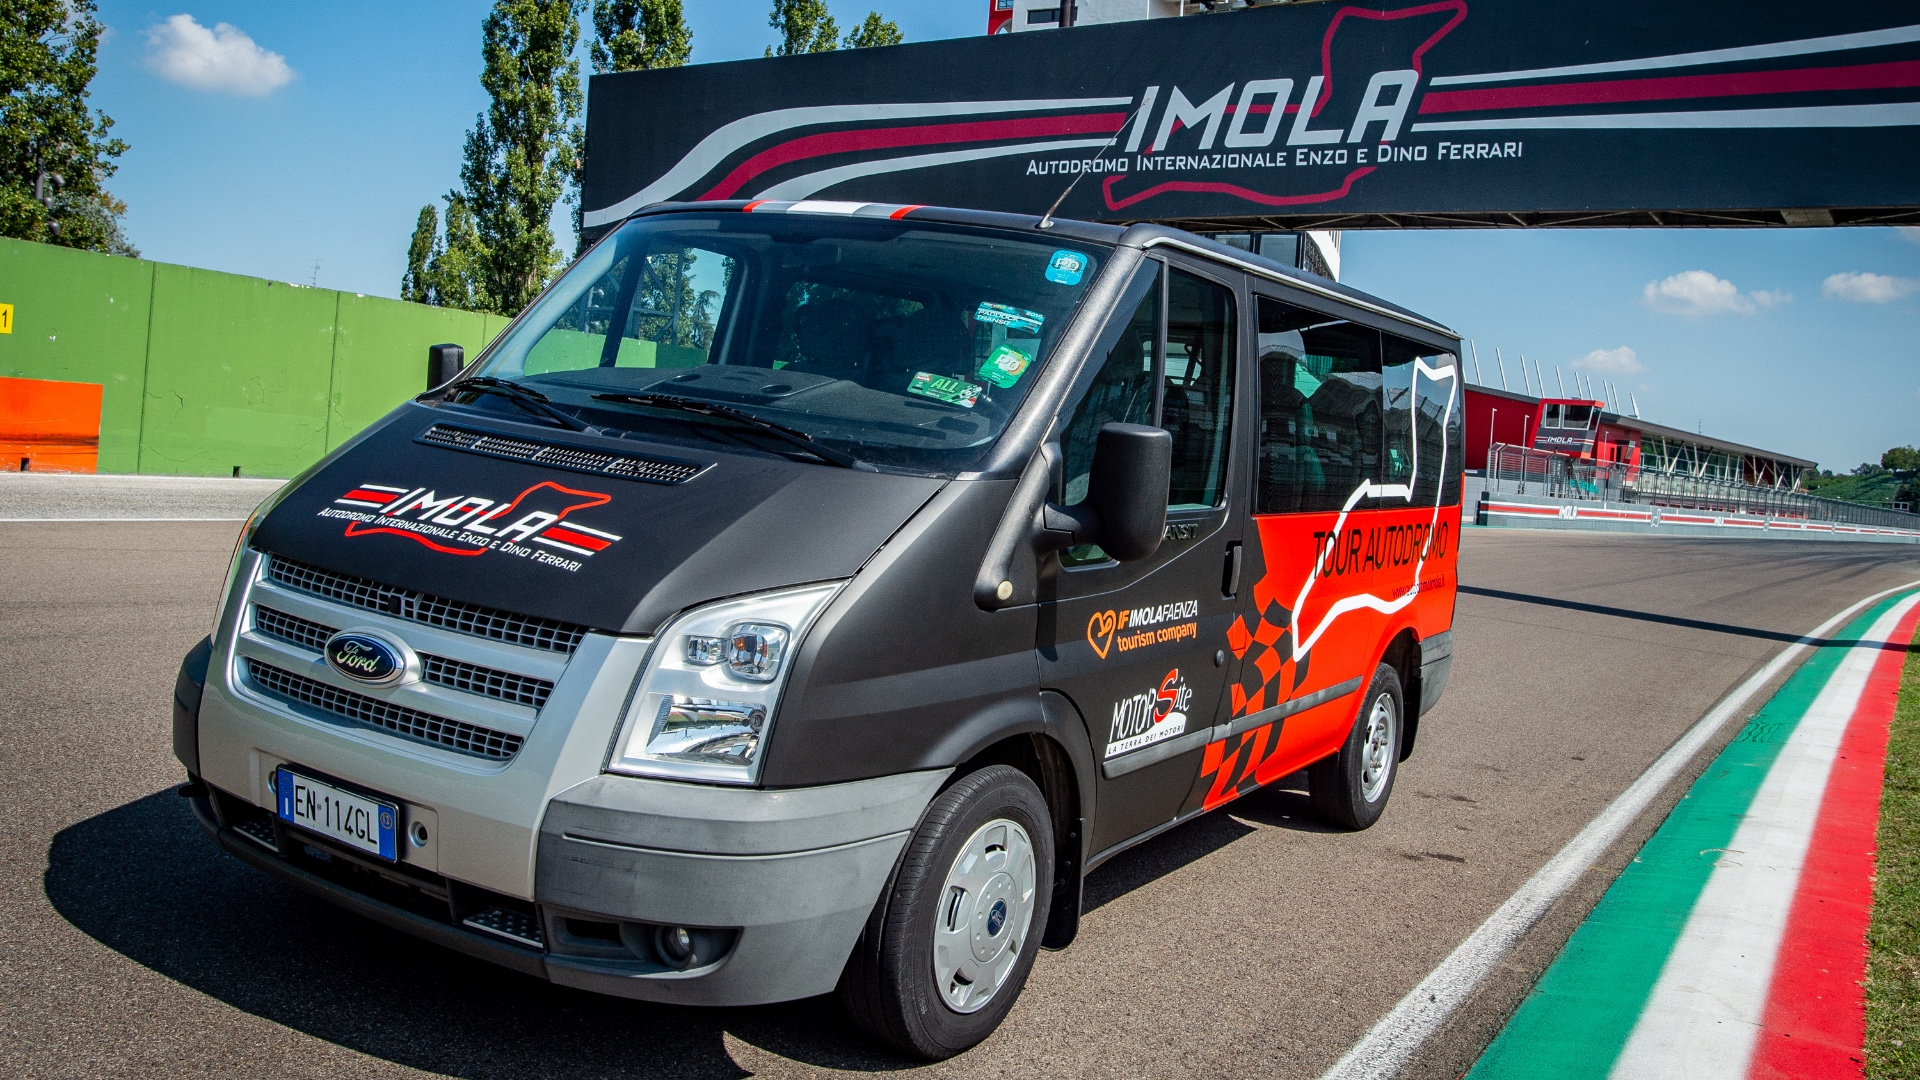 Imola Circuit guided tour